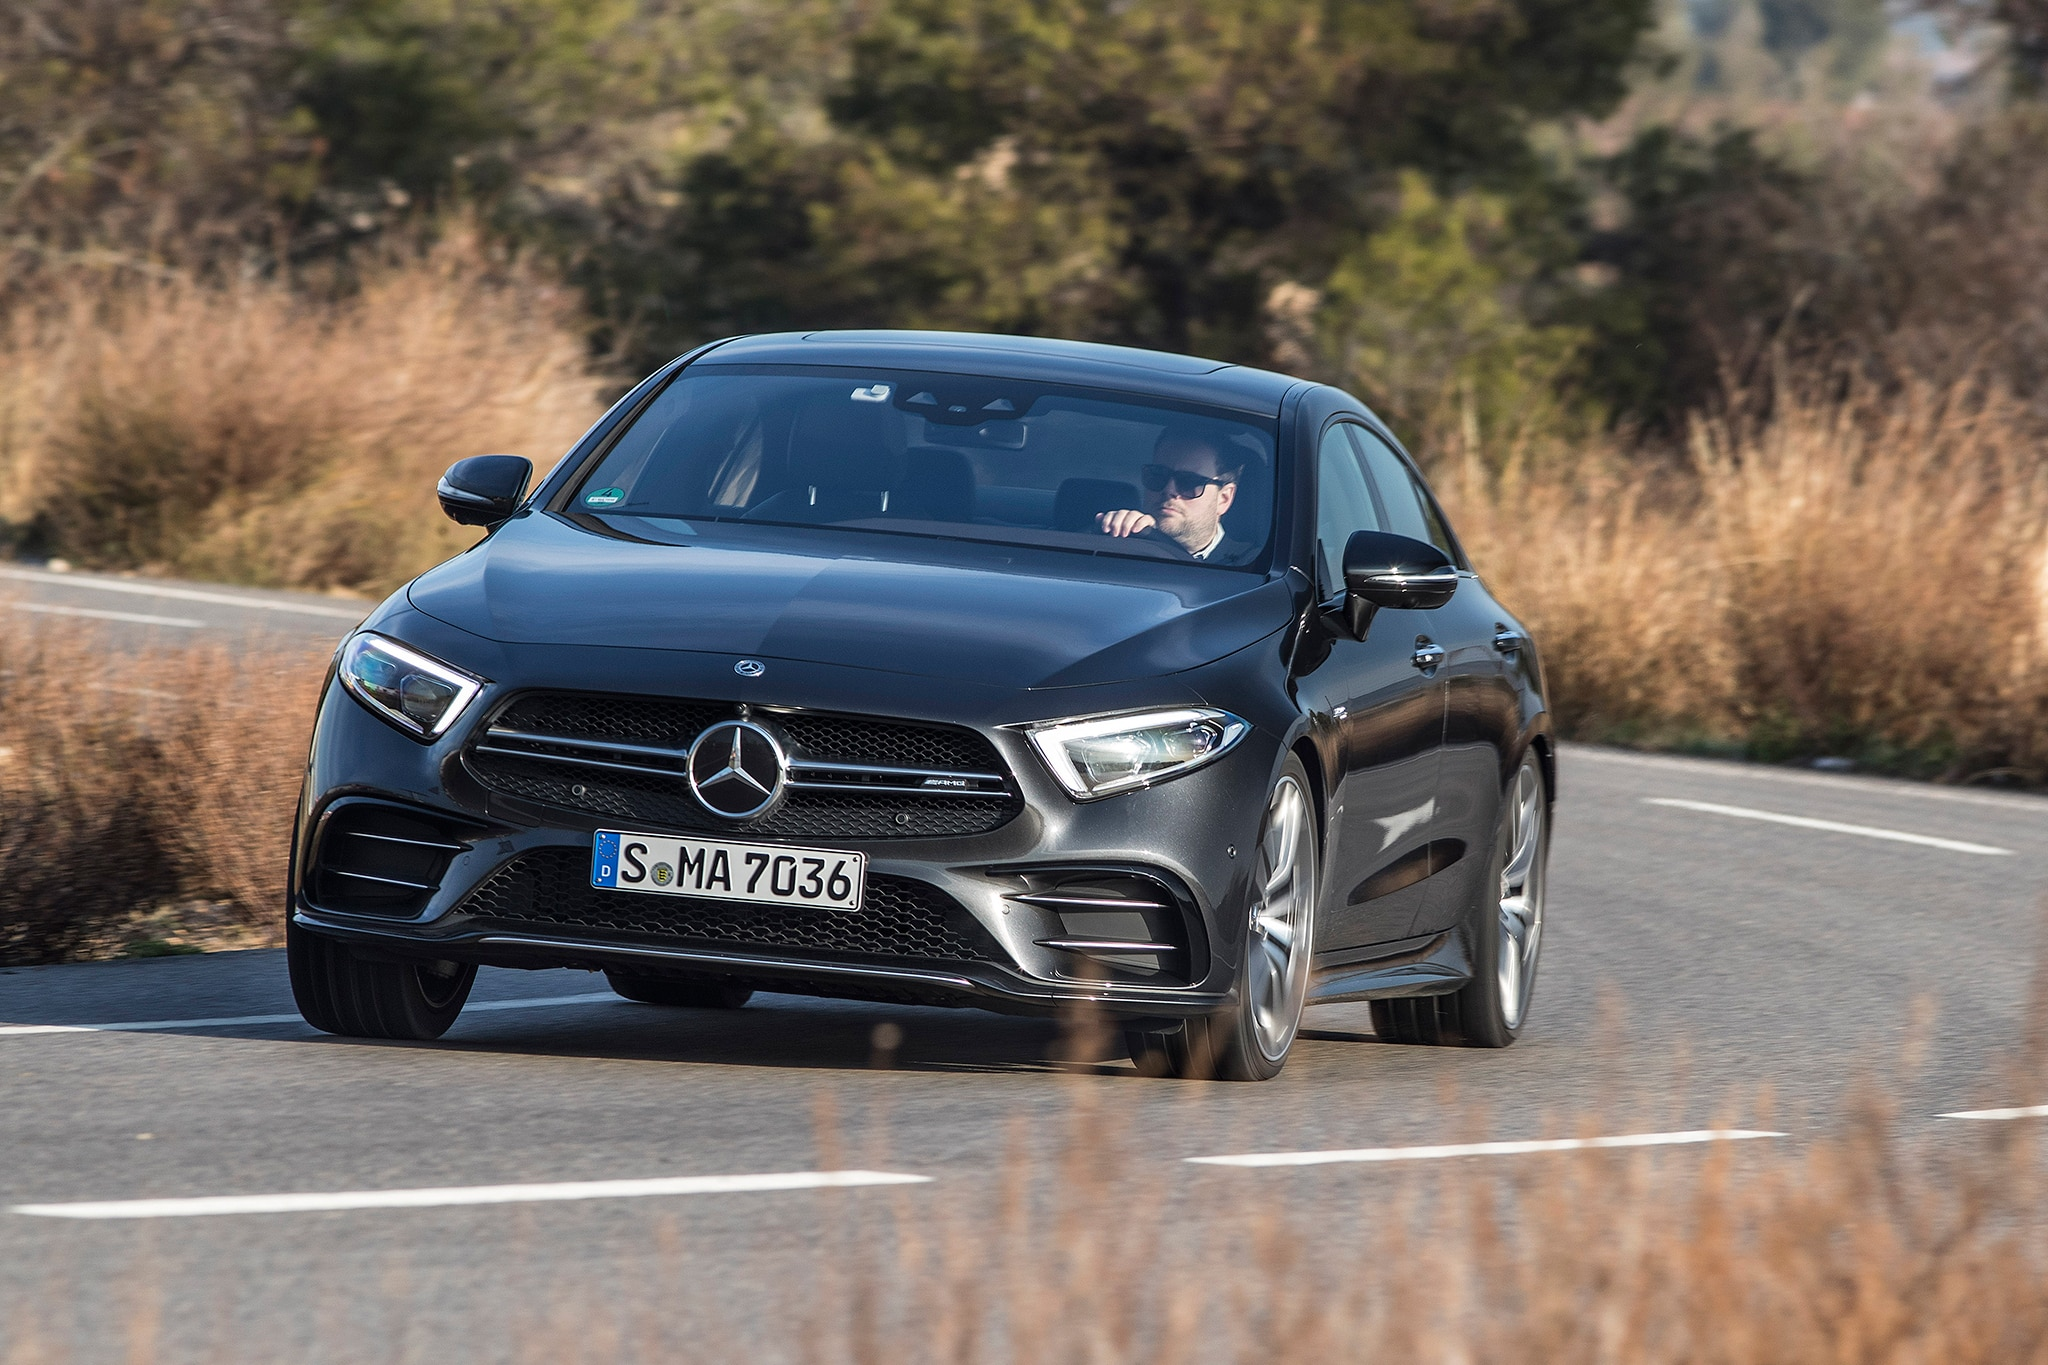 2019 Mercedes AMG CLS53 Front Three Quarter In Motion 06